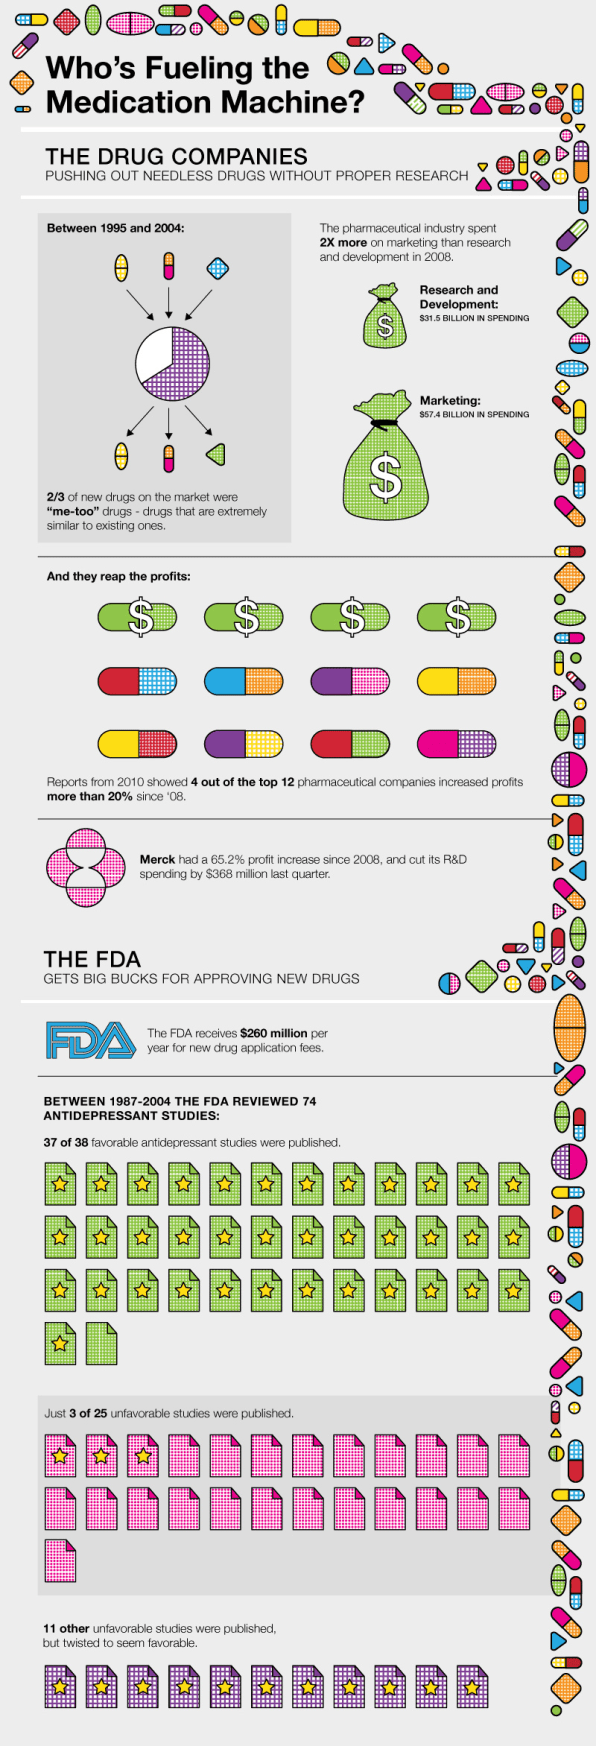 How Americas Overmedicating Low Income >> We Pop Way Too Many Pills And The Pills Don T Even Work